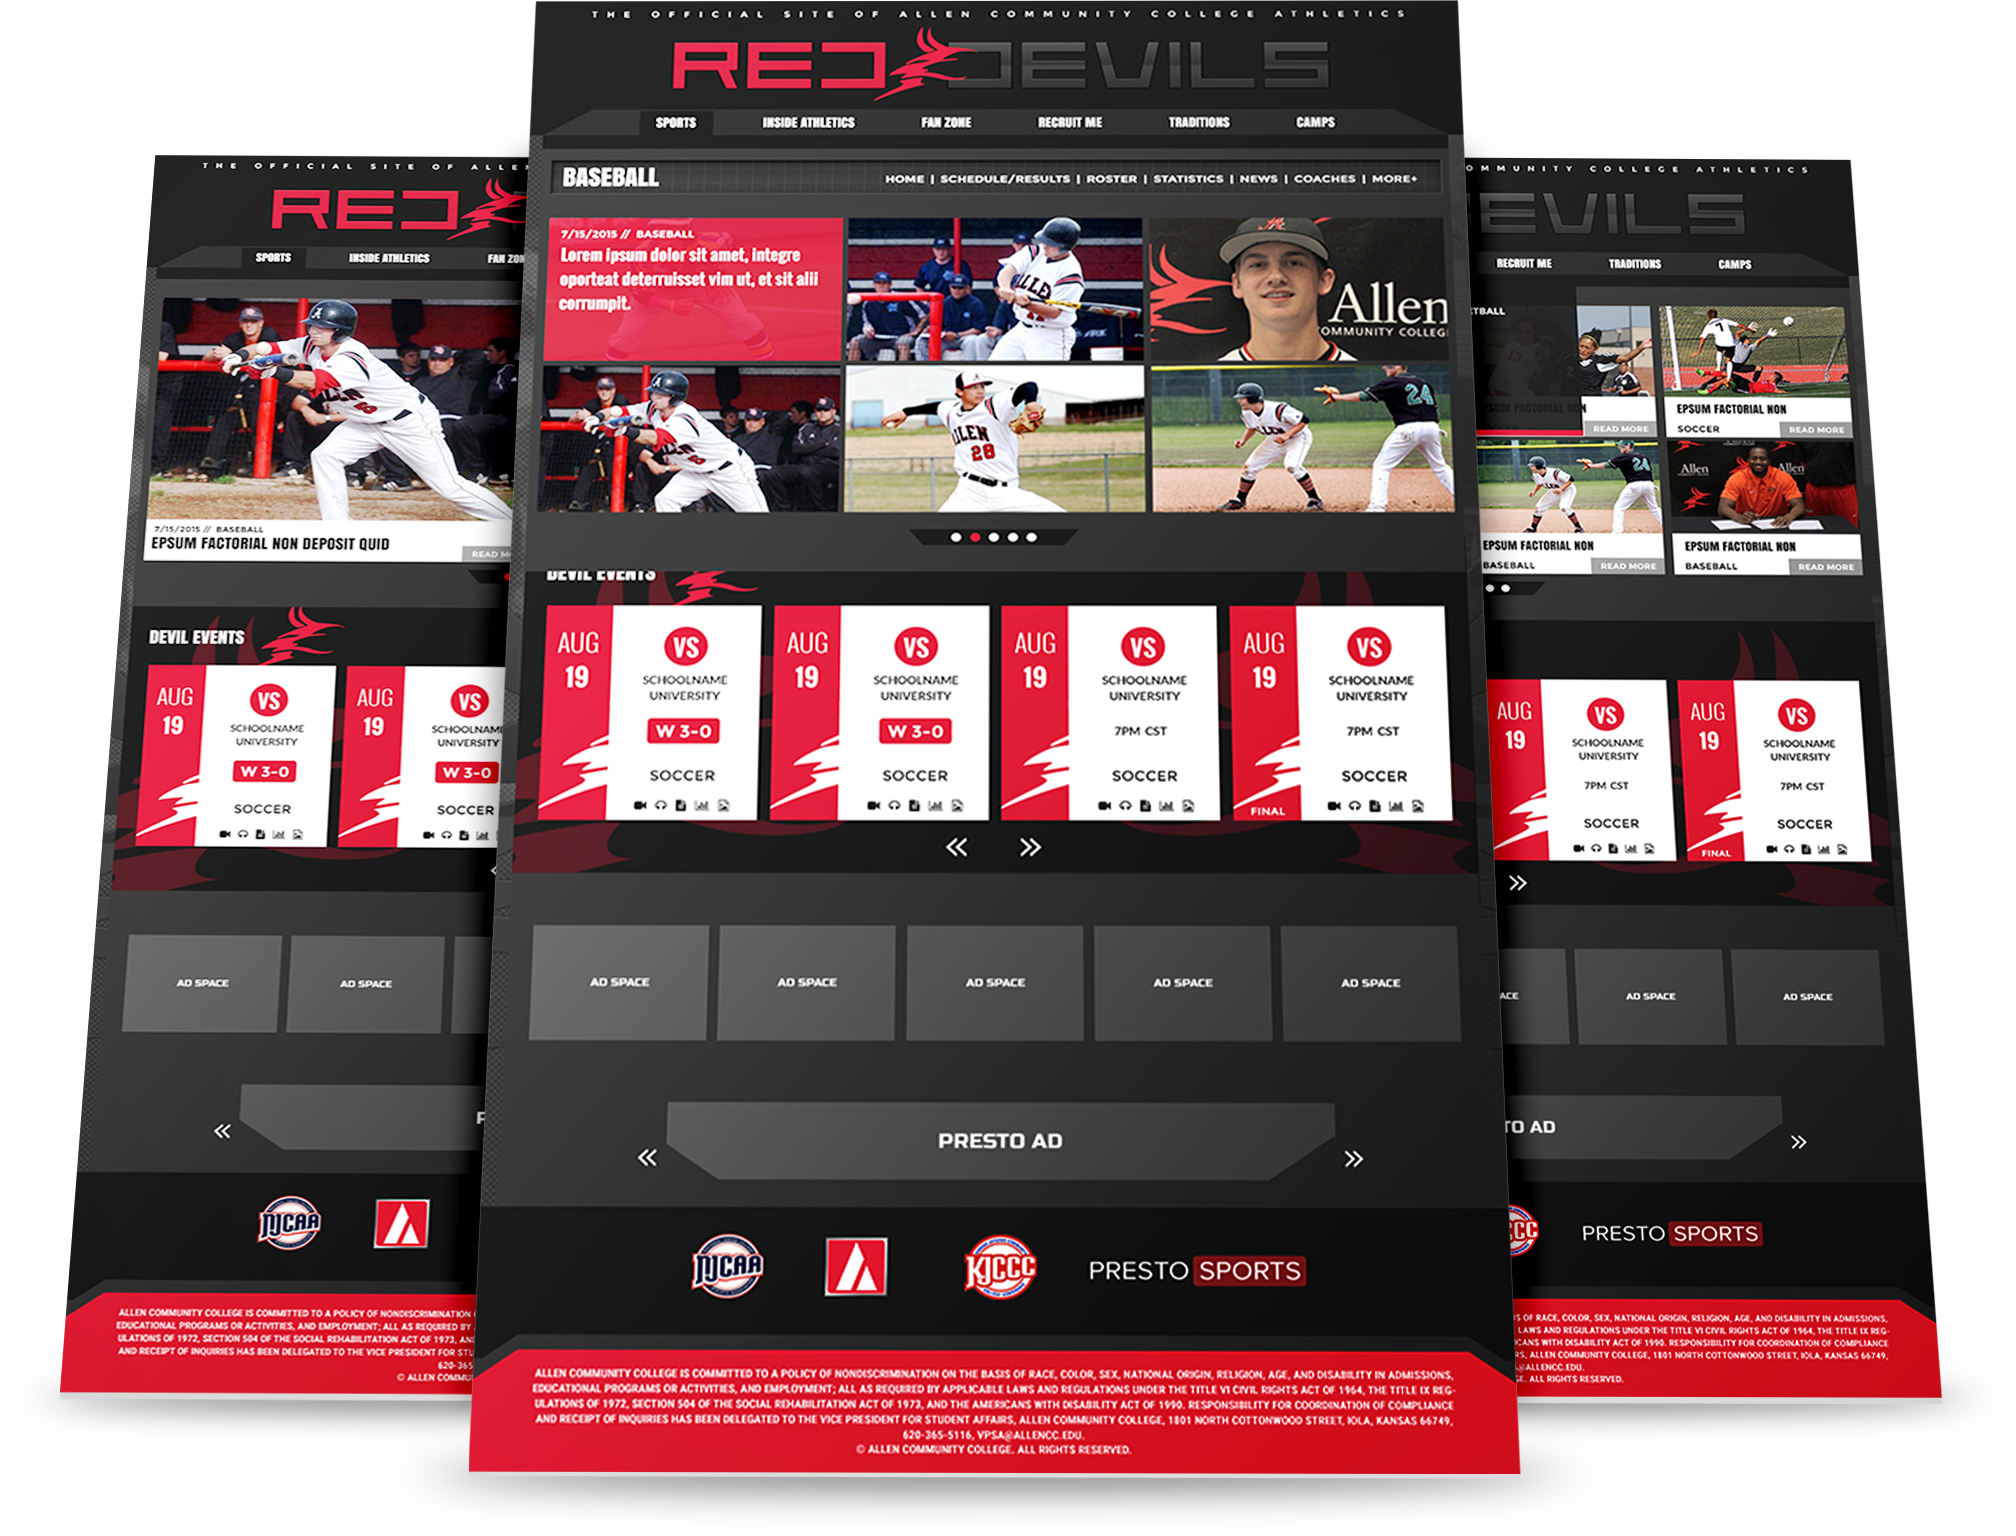 Mullican Creative Designs and Development - Allen Community College Red Devils Athletics Department Website Design - Red Devils Web Design Mockup